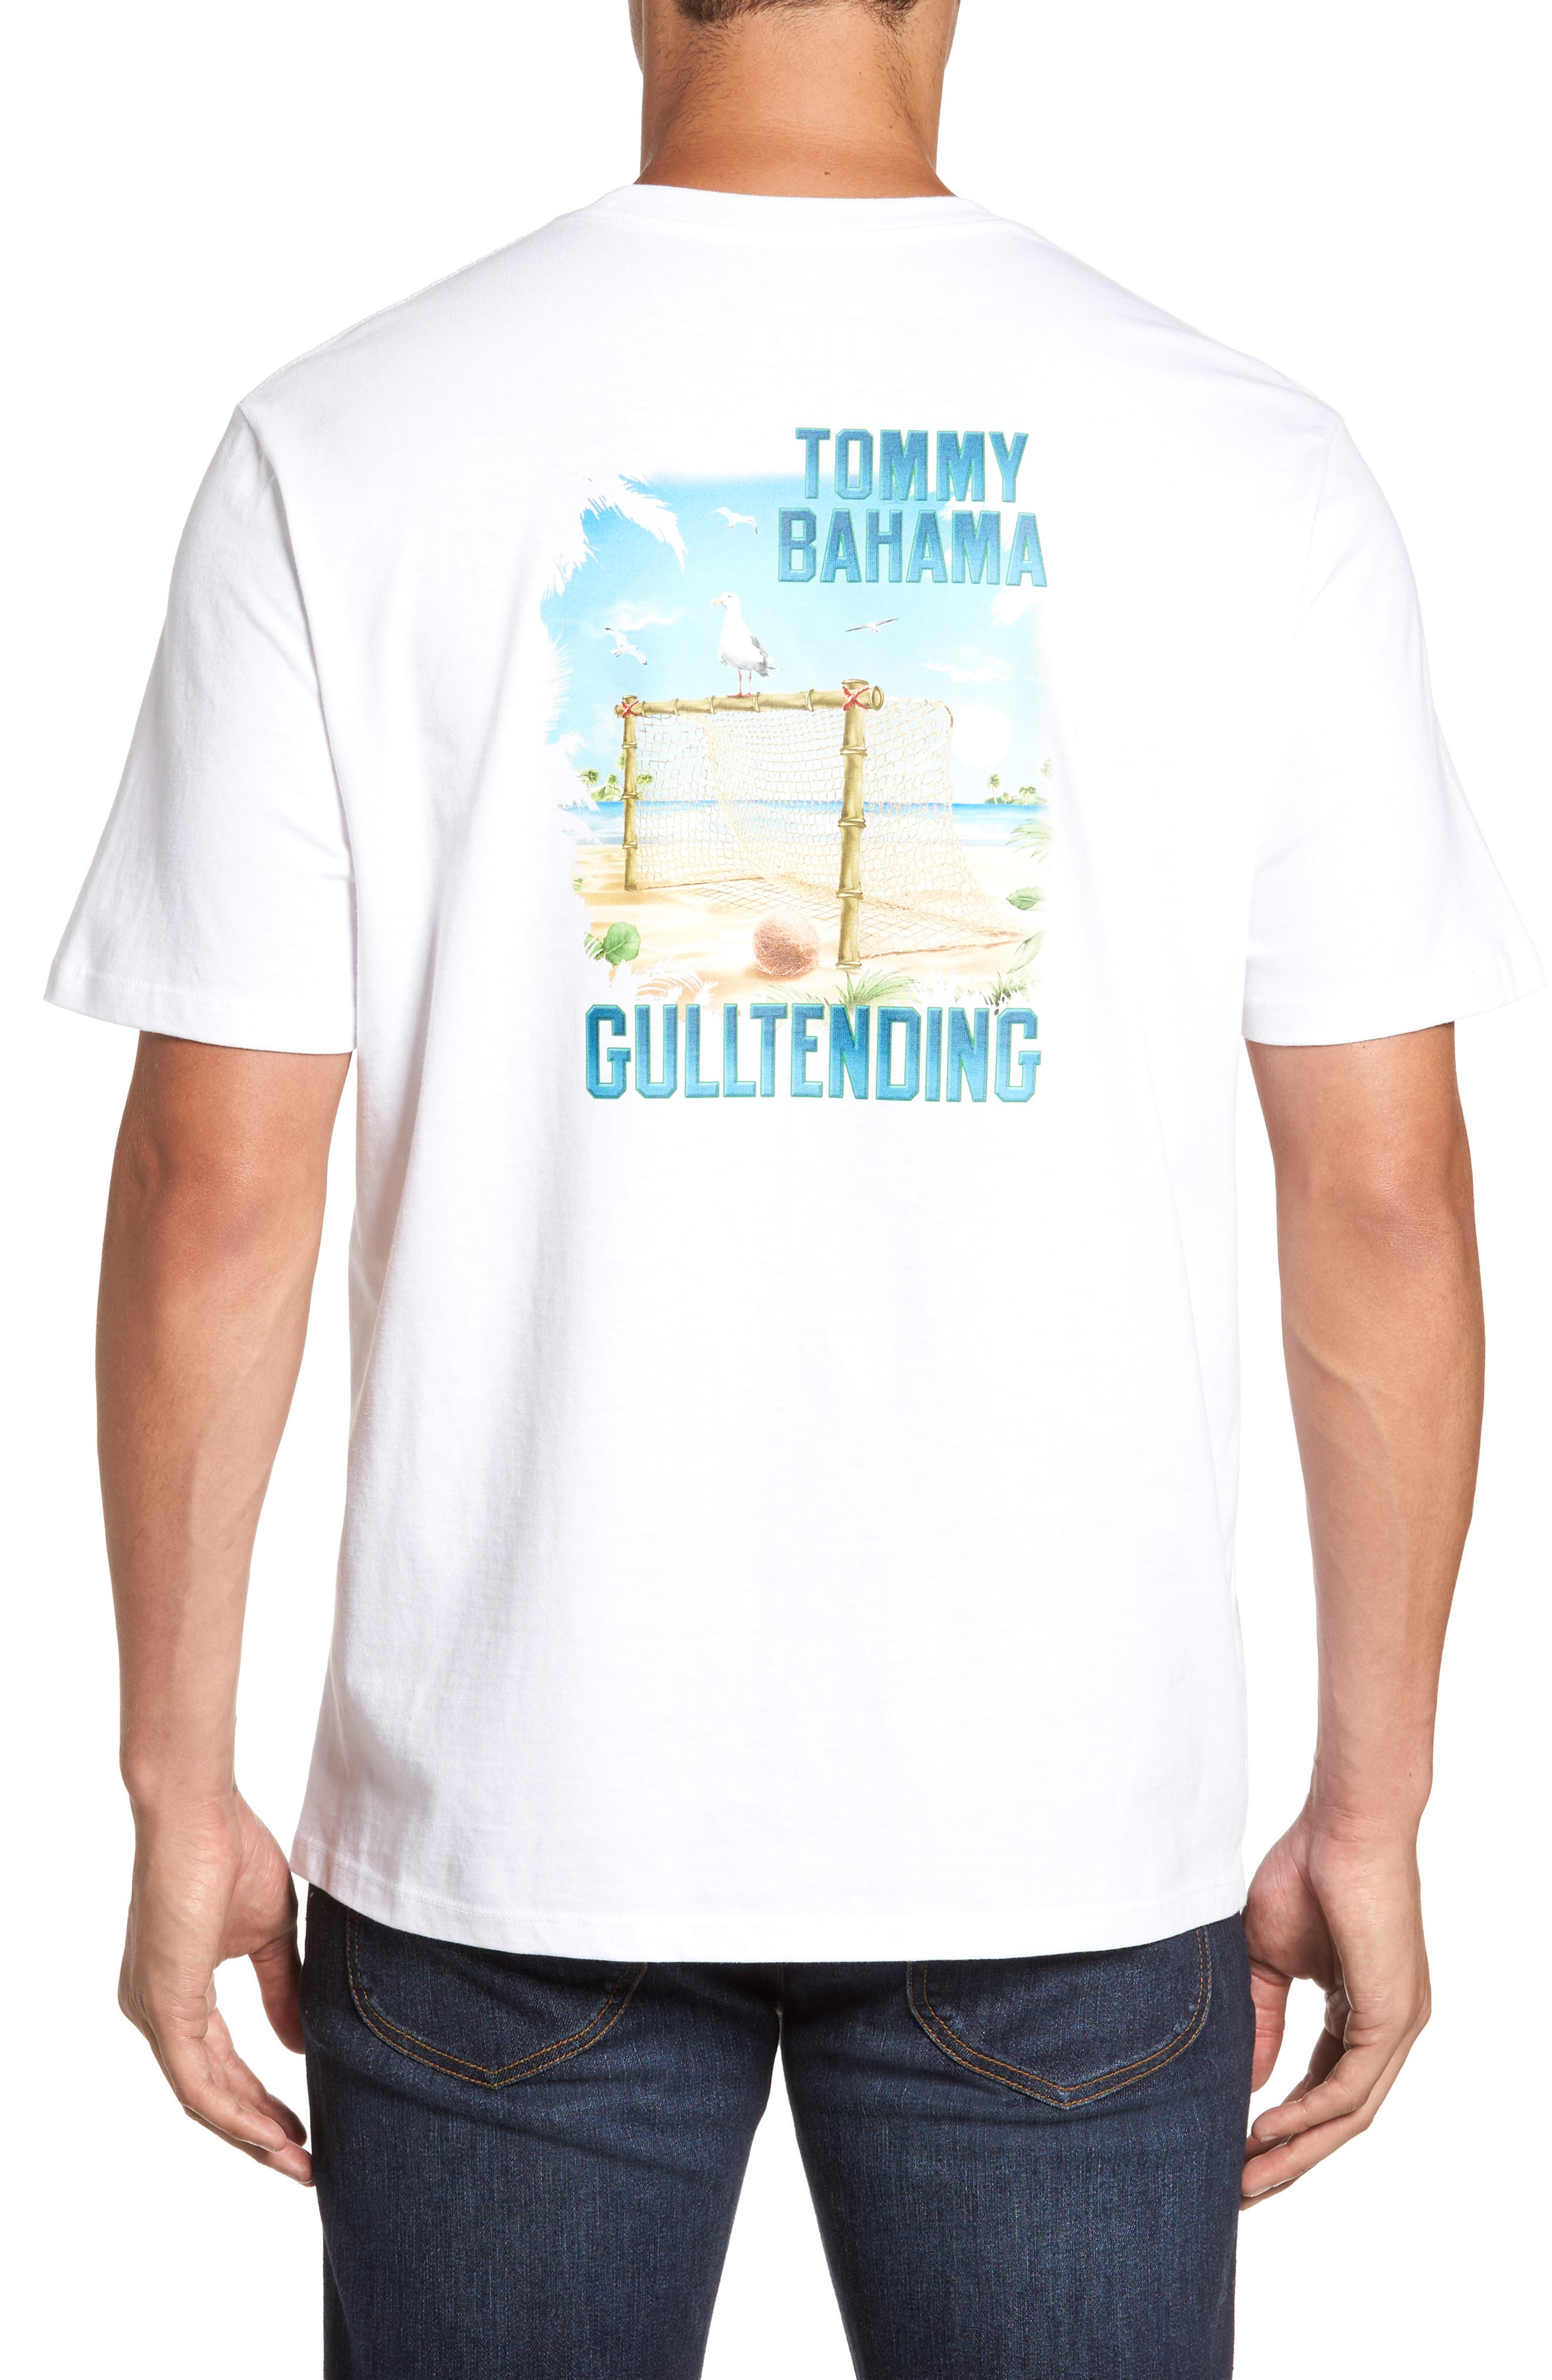 Alternate Image 1 Selected - Tommy Bahama Gull Tending Standard Fit T-Shirt